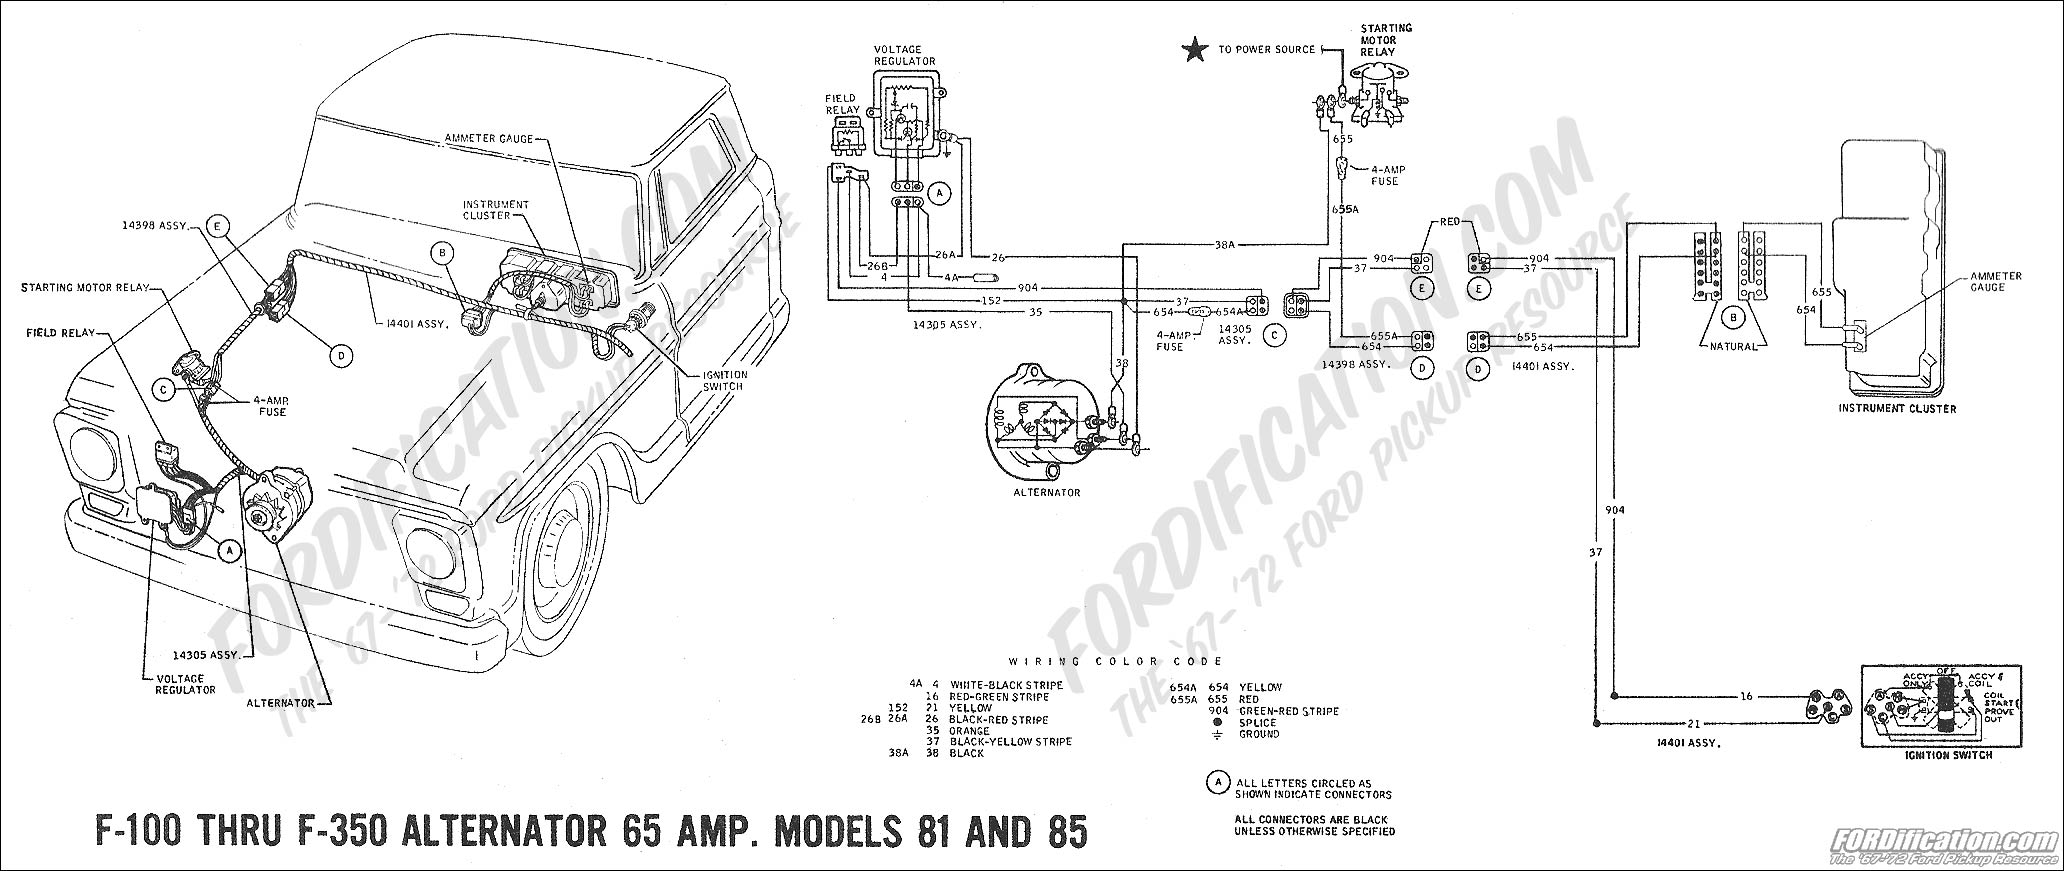 84 Ford F250 Ignition Wiring Diagram on 1985 Ford F 150 Wiring Diagram